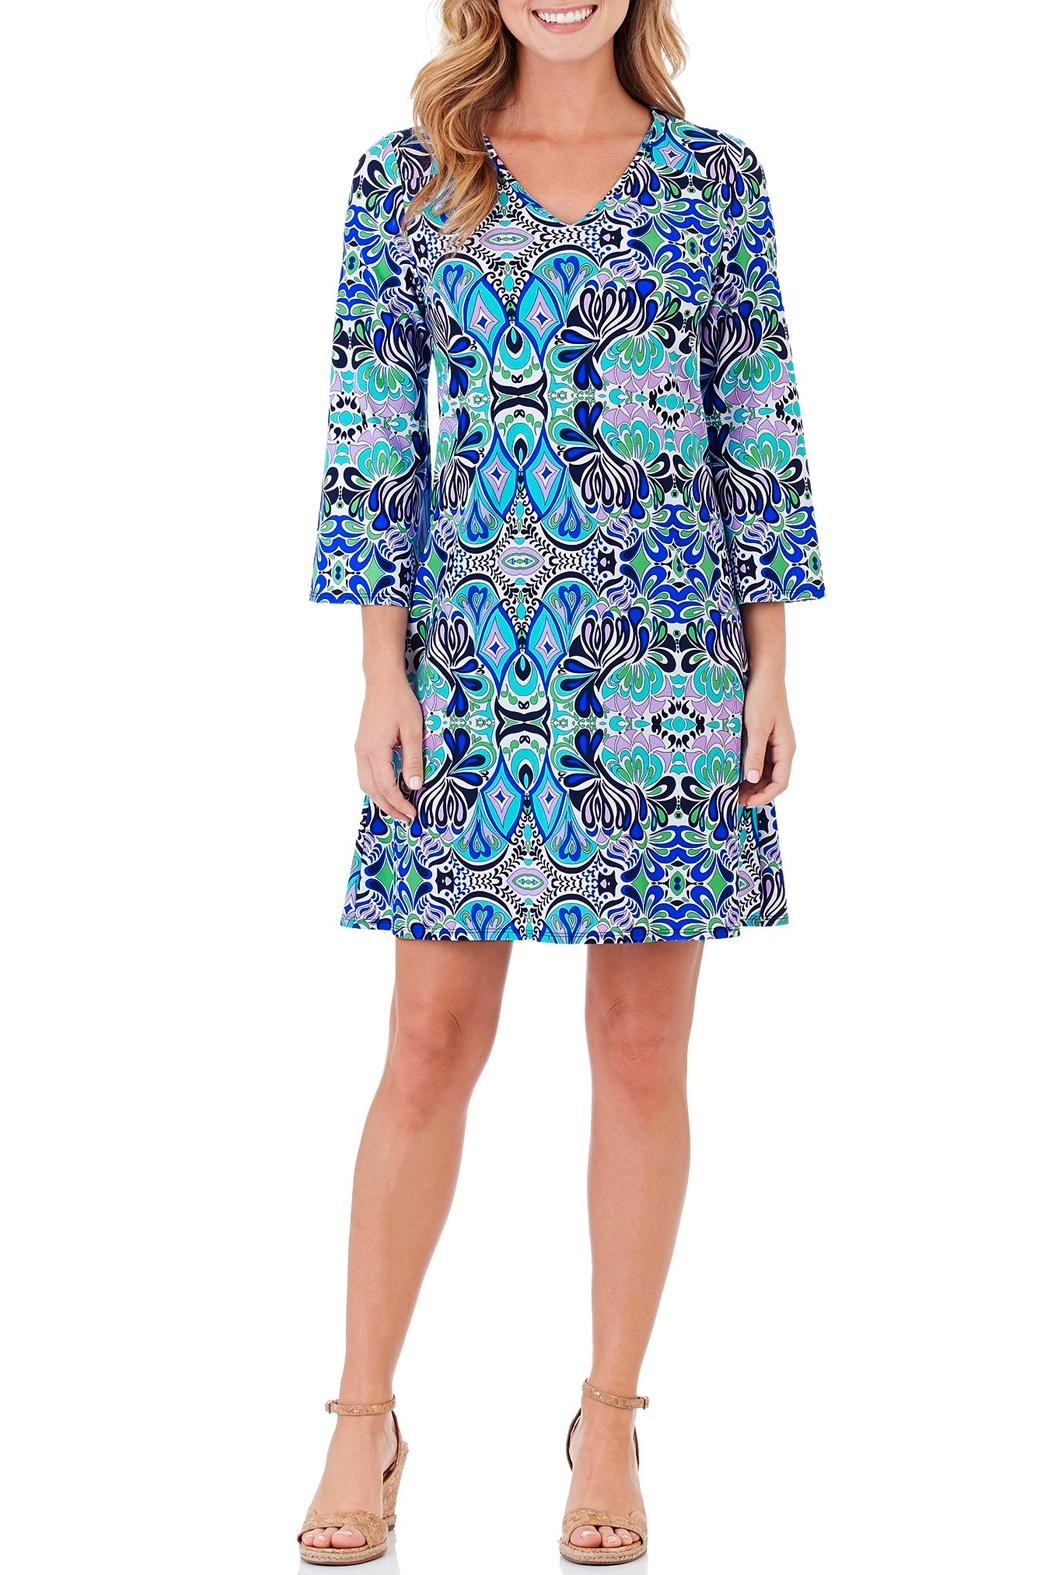 Jude Connally Lexi Shift Dress - Front Cropped Image